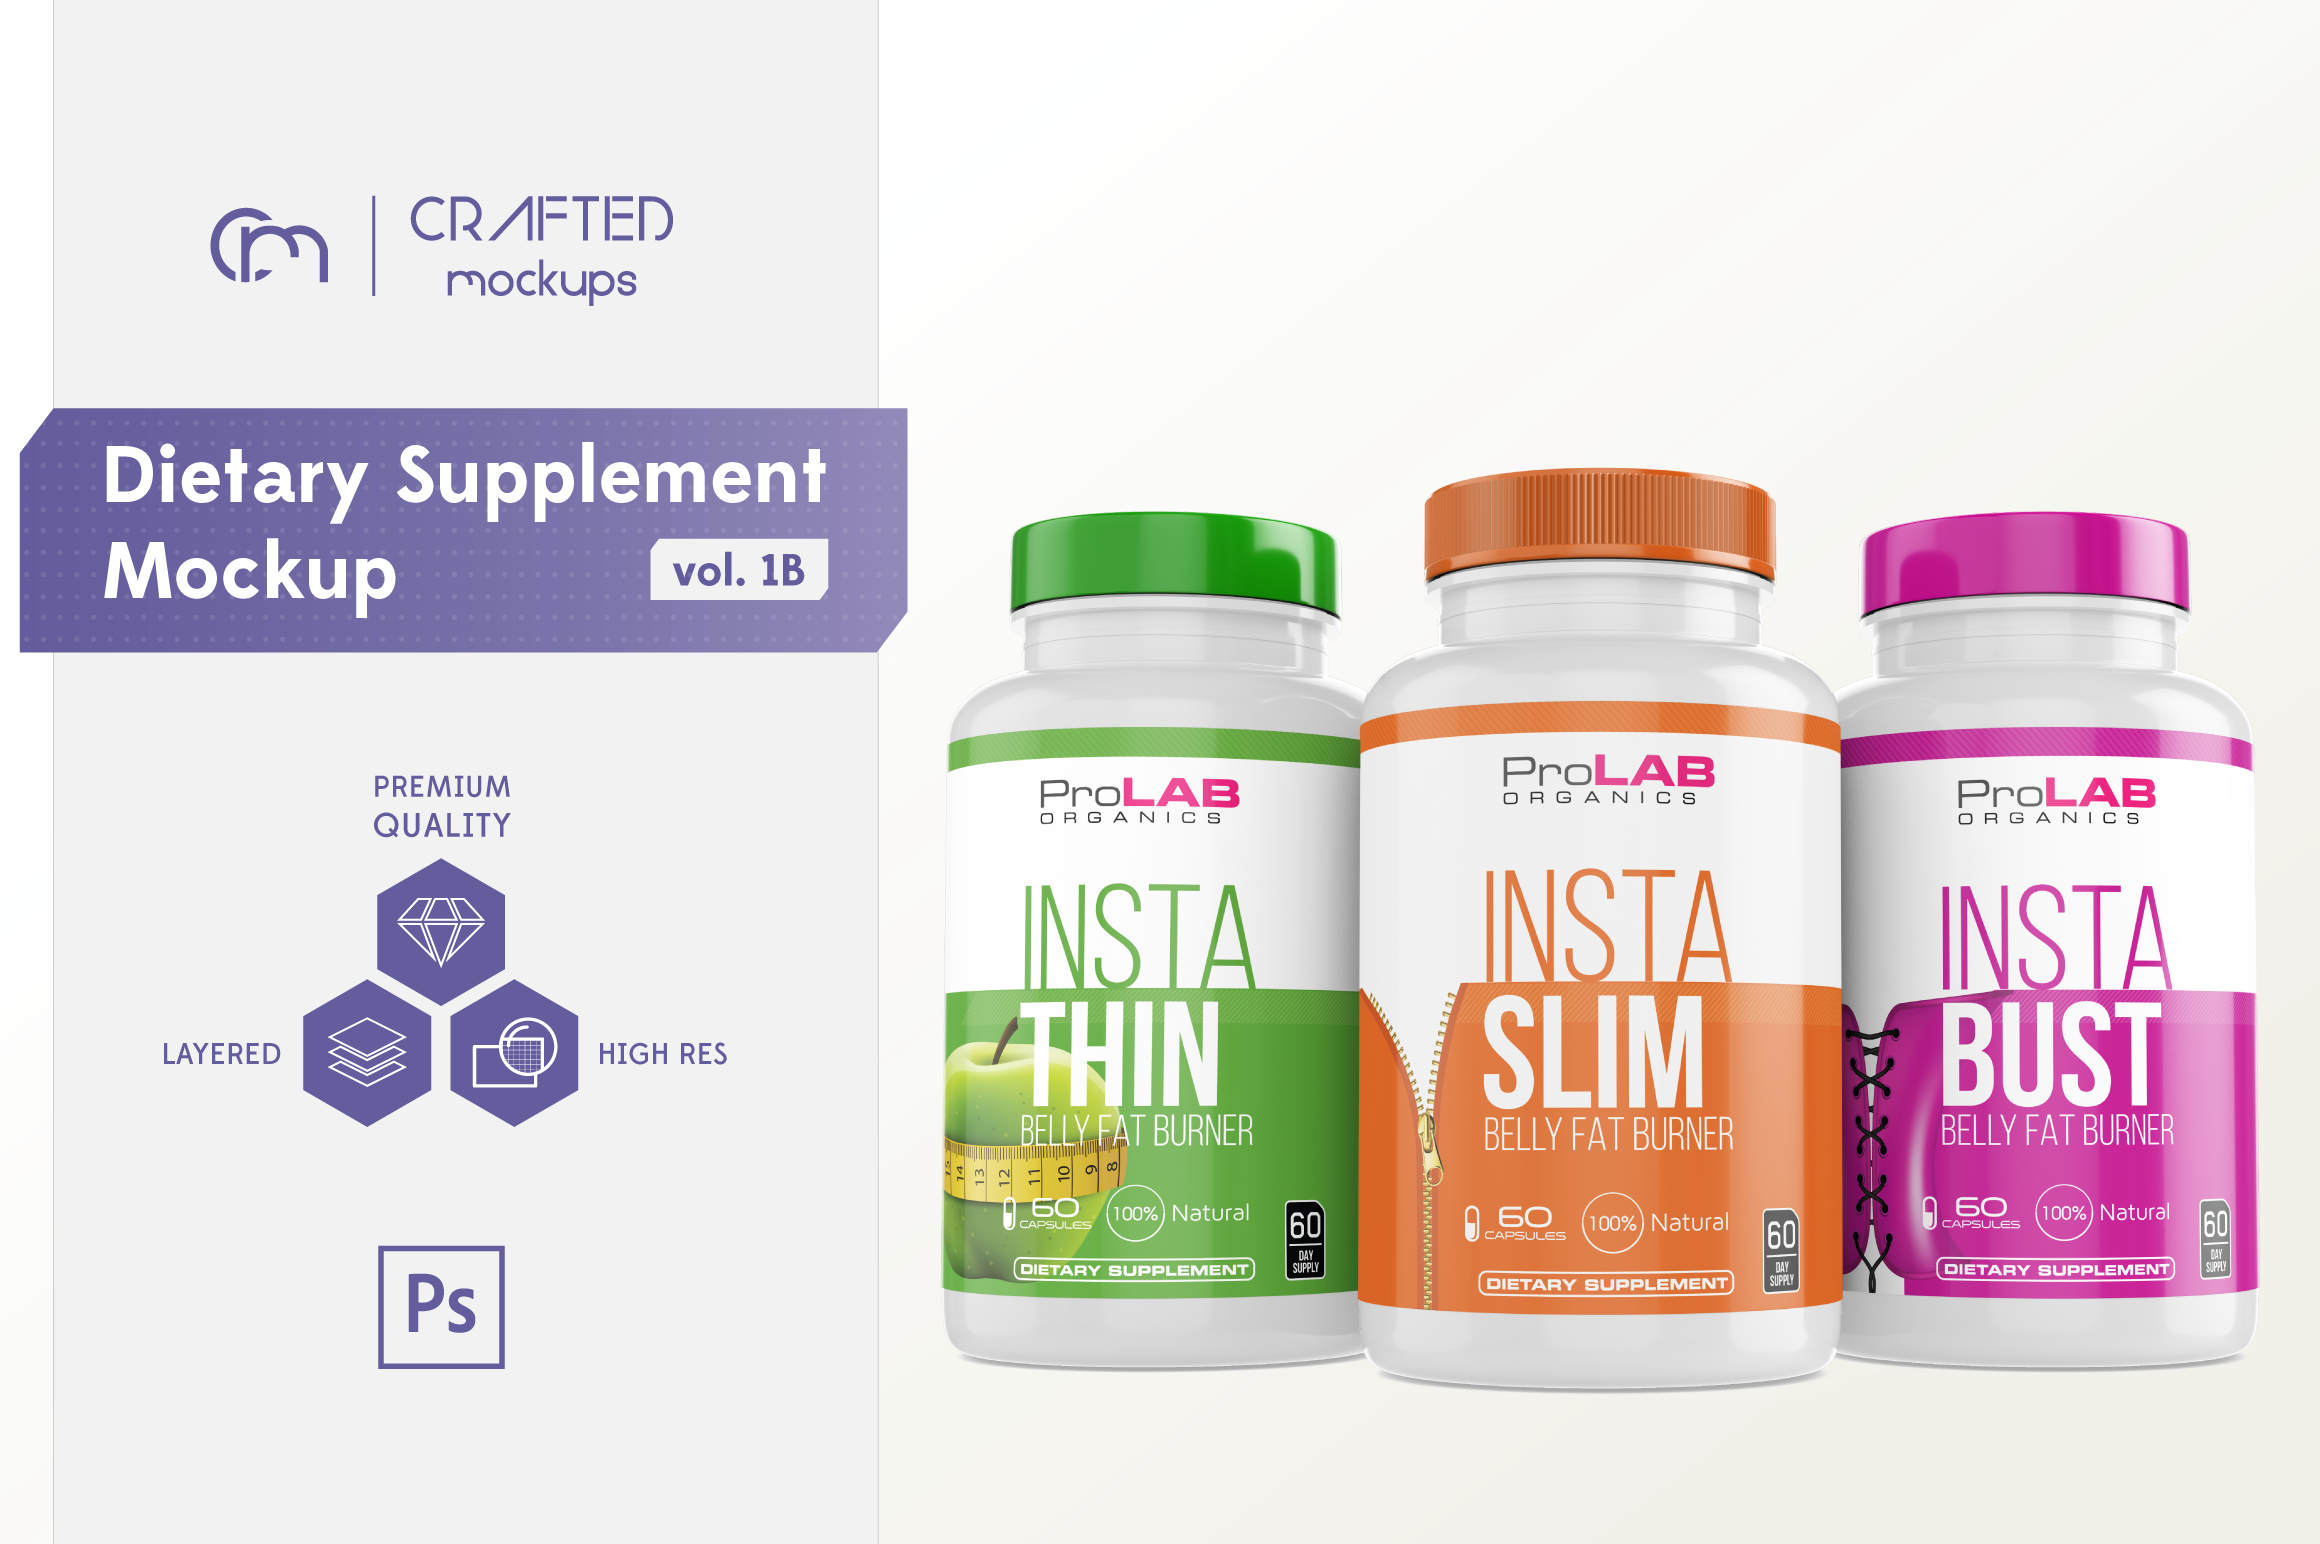 Dietary Supplement Mockup v. 1B example image 1